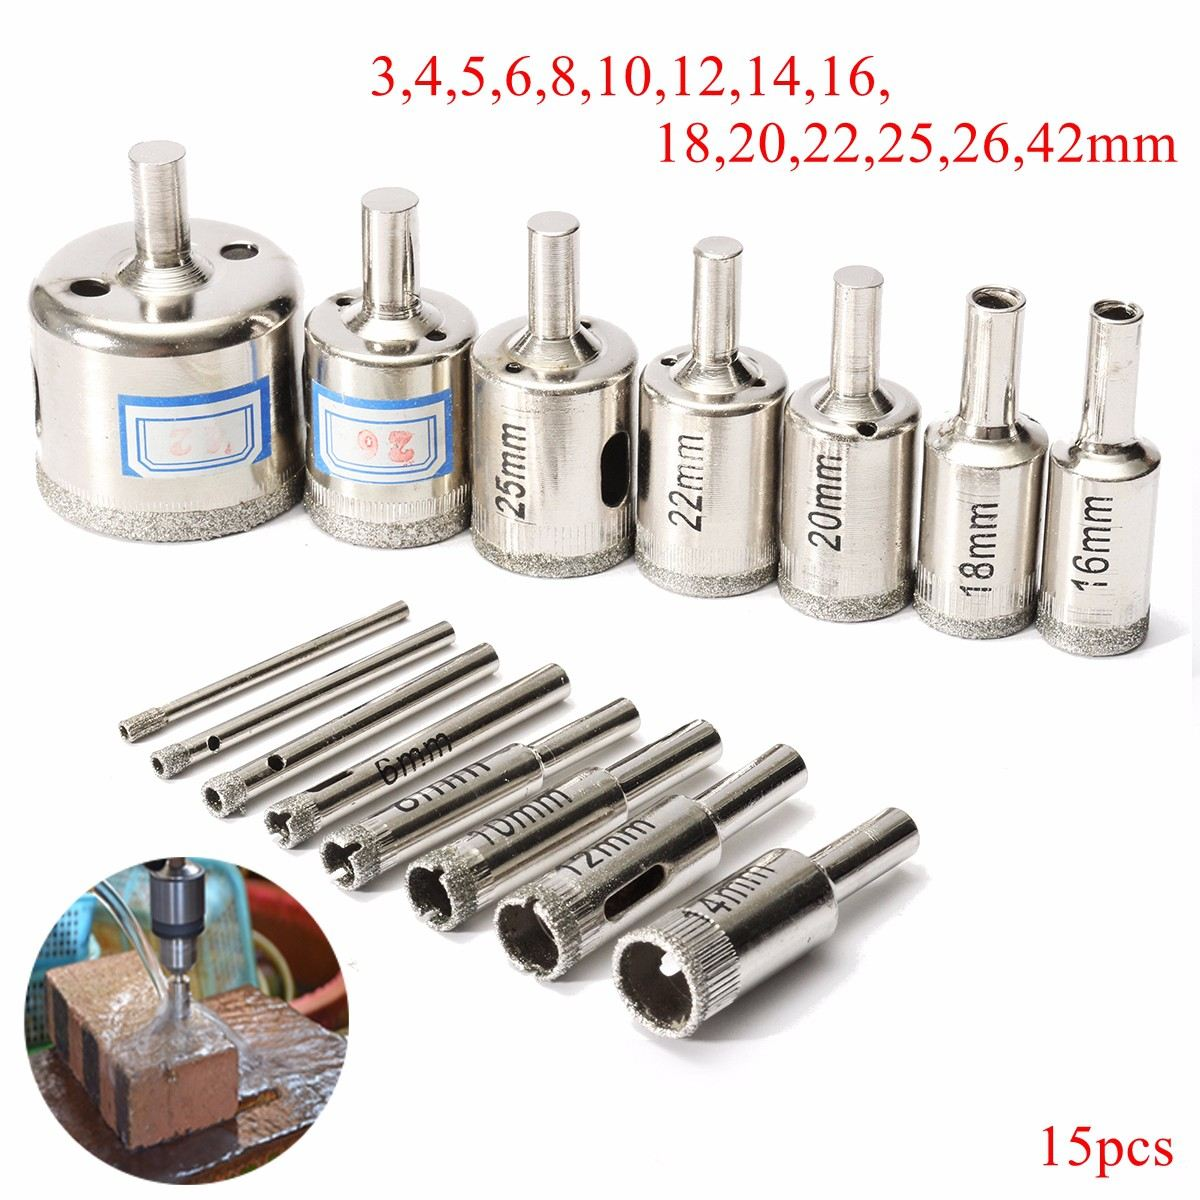 15pcs/set Marble Drill Bits 3mm-42mm Diamond Hole Saw Cutter Tool for Marble Tile Ceramic Glass Hot Sale 10pcs set diamond tool drill bit hole saw for glass ceramic marble tile 3 50mm power tool